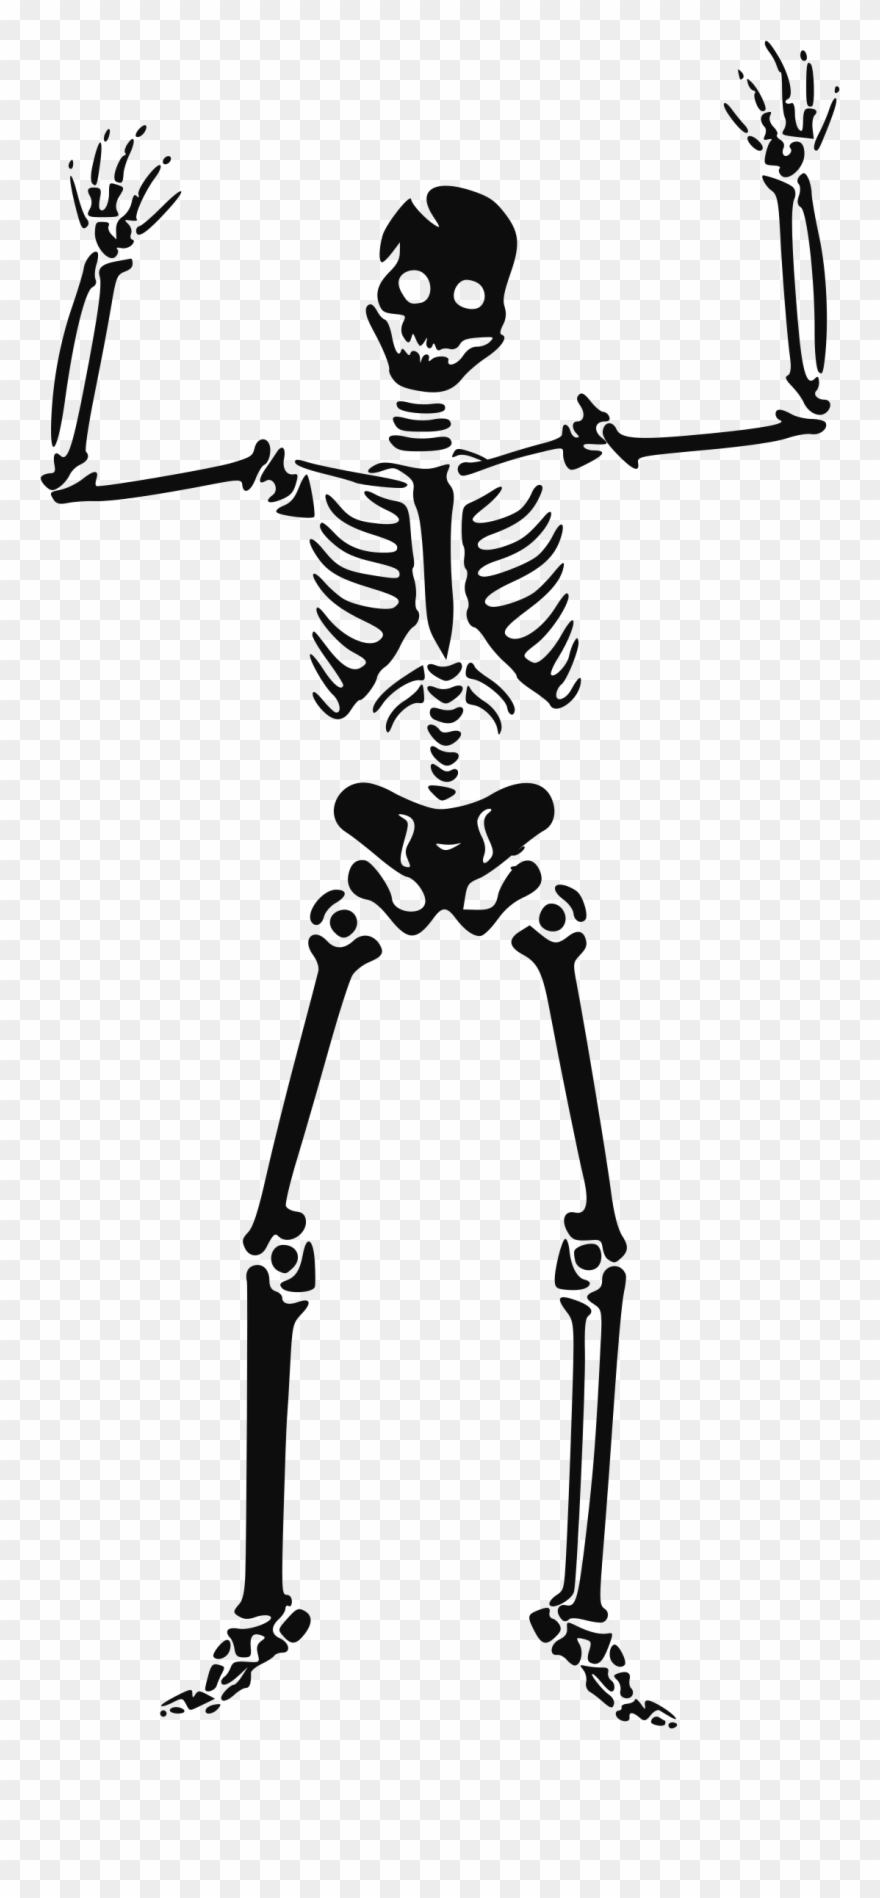 Skeleton Clipart Transparent.